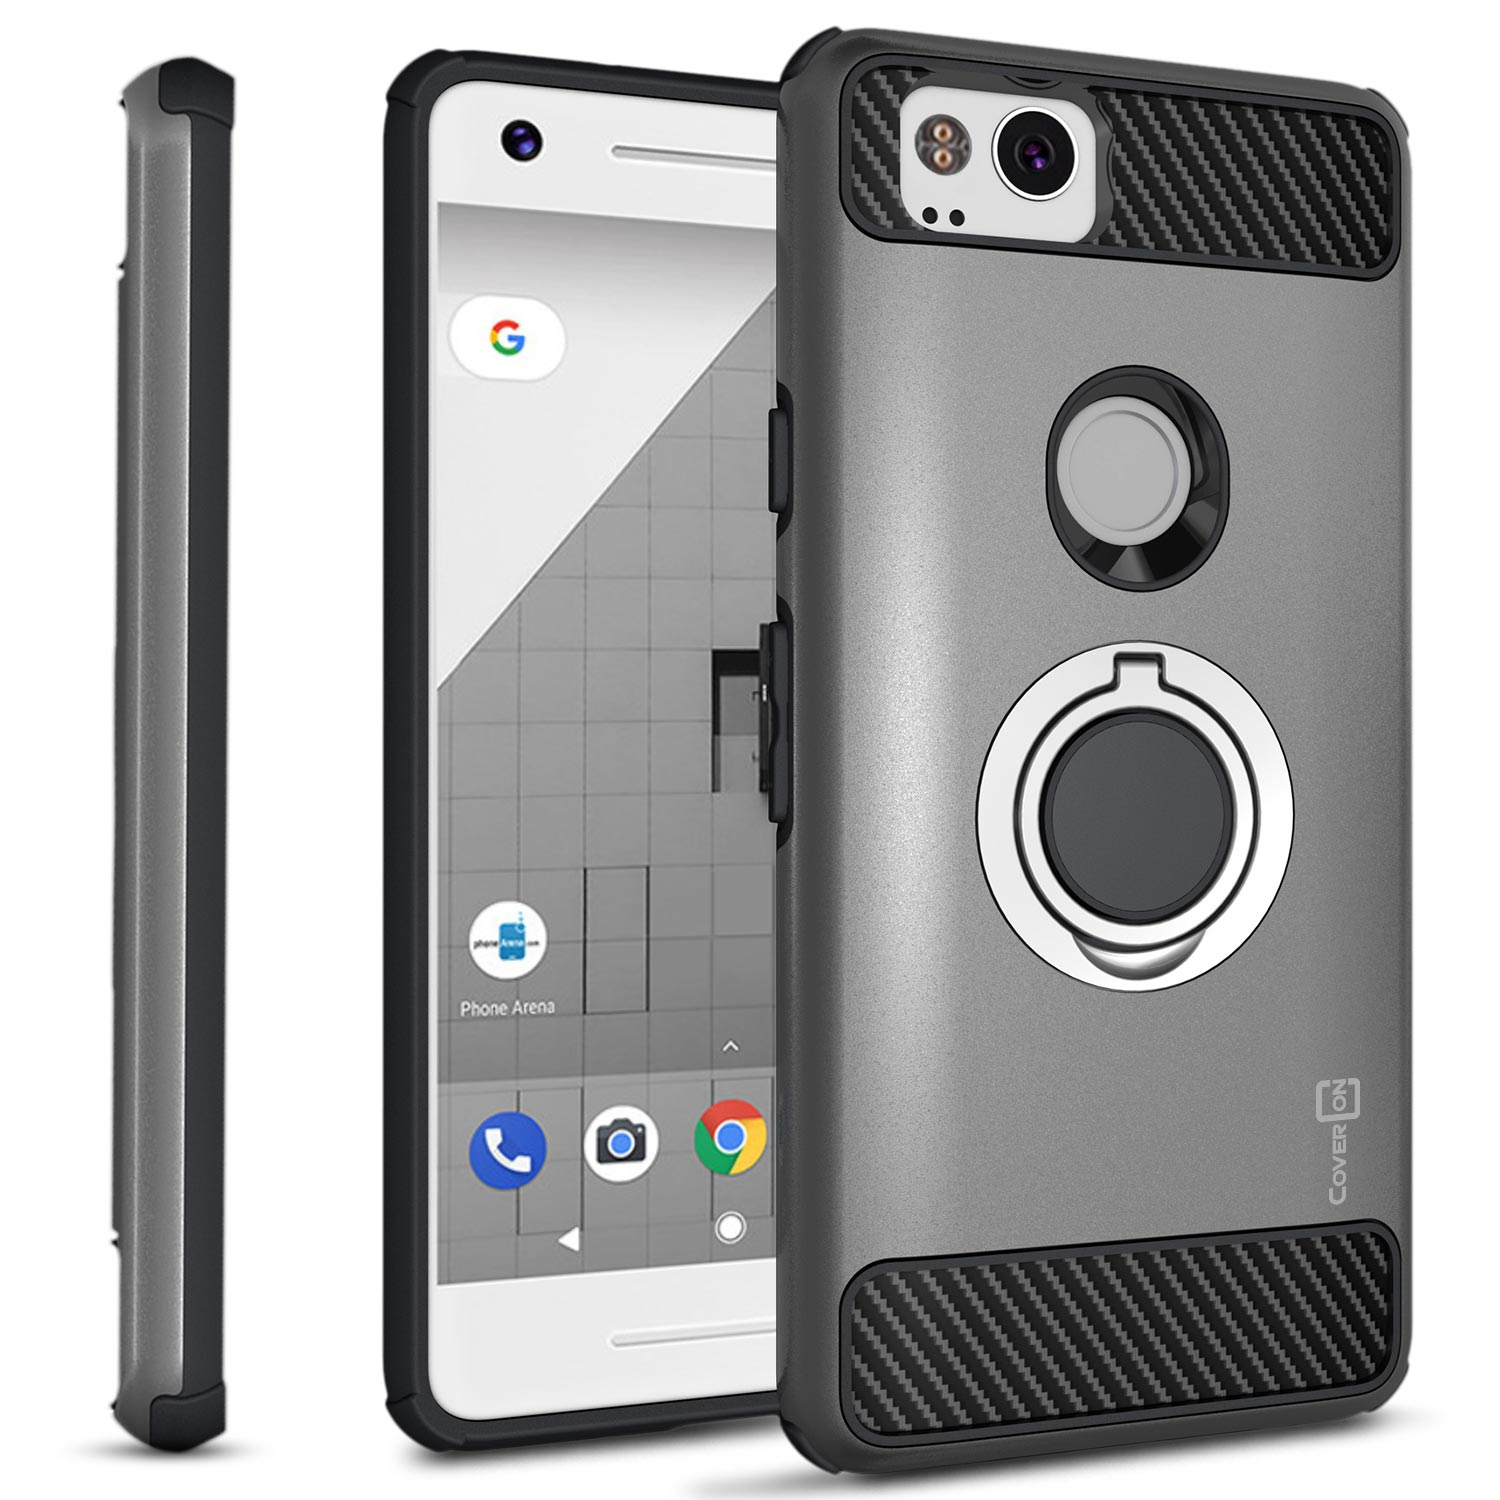 CoverON Google Pixel 2 Case with Ring Holder, RingCase Series Hybrid Protective Dua Layer Phone Cover